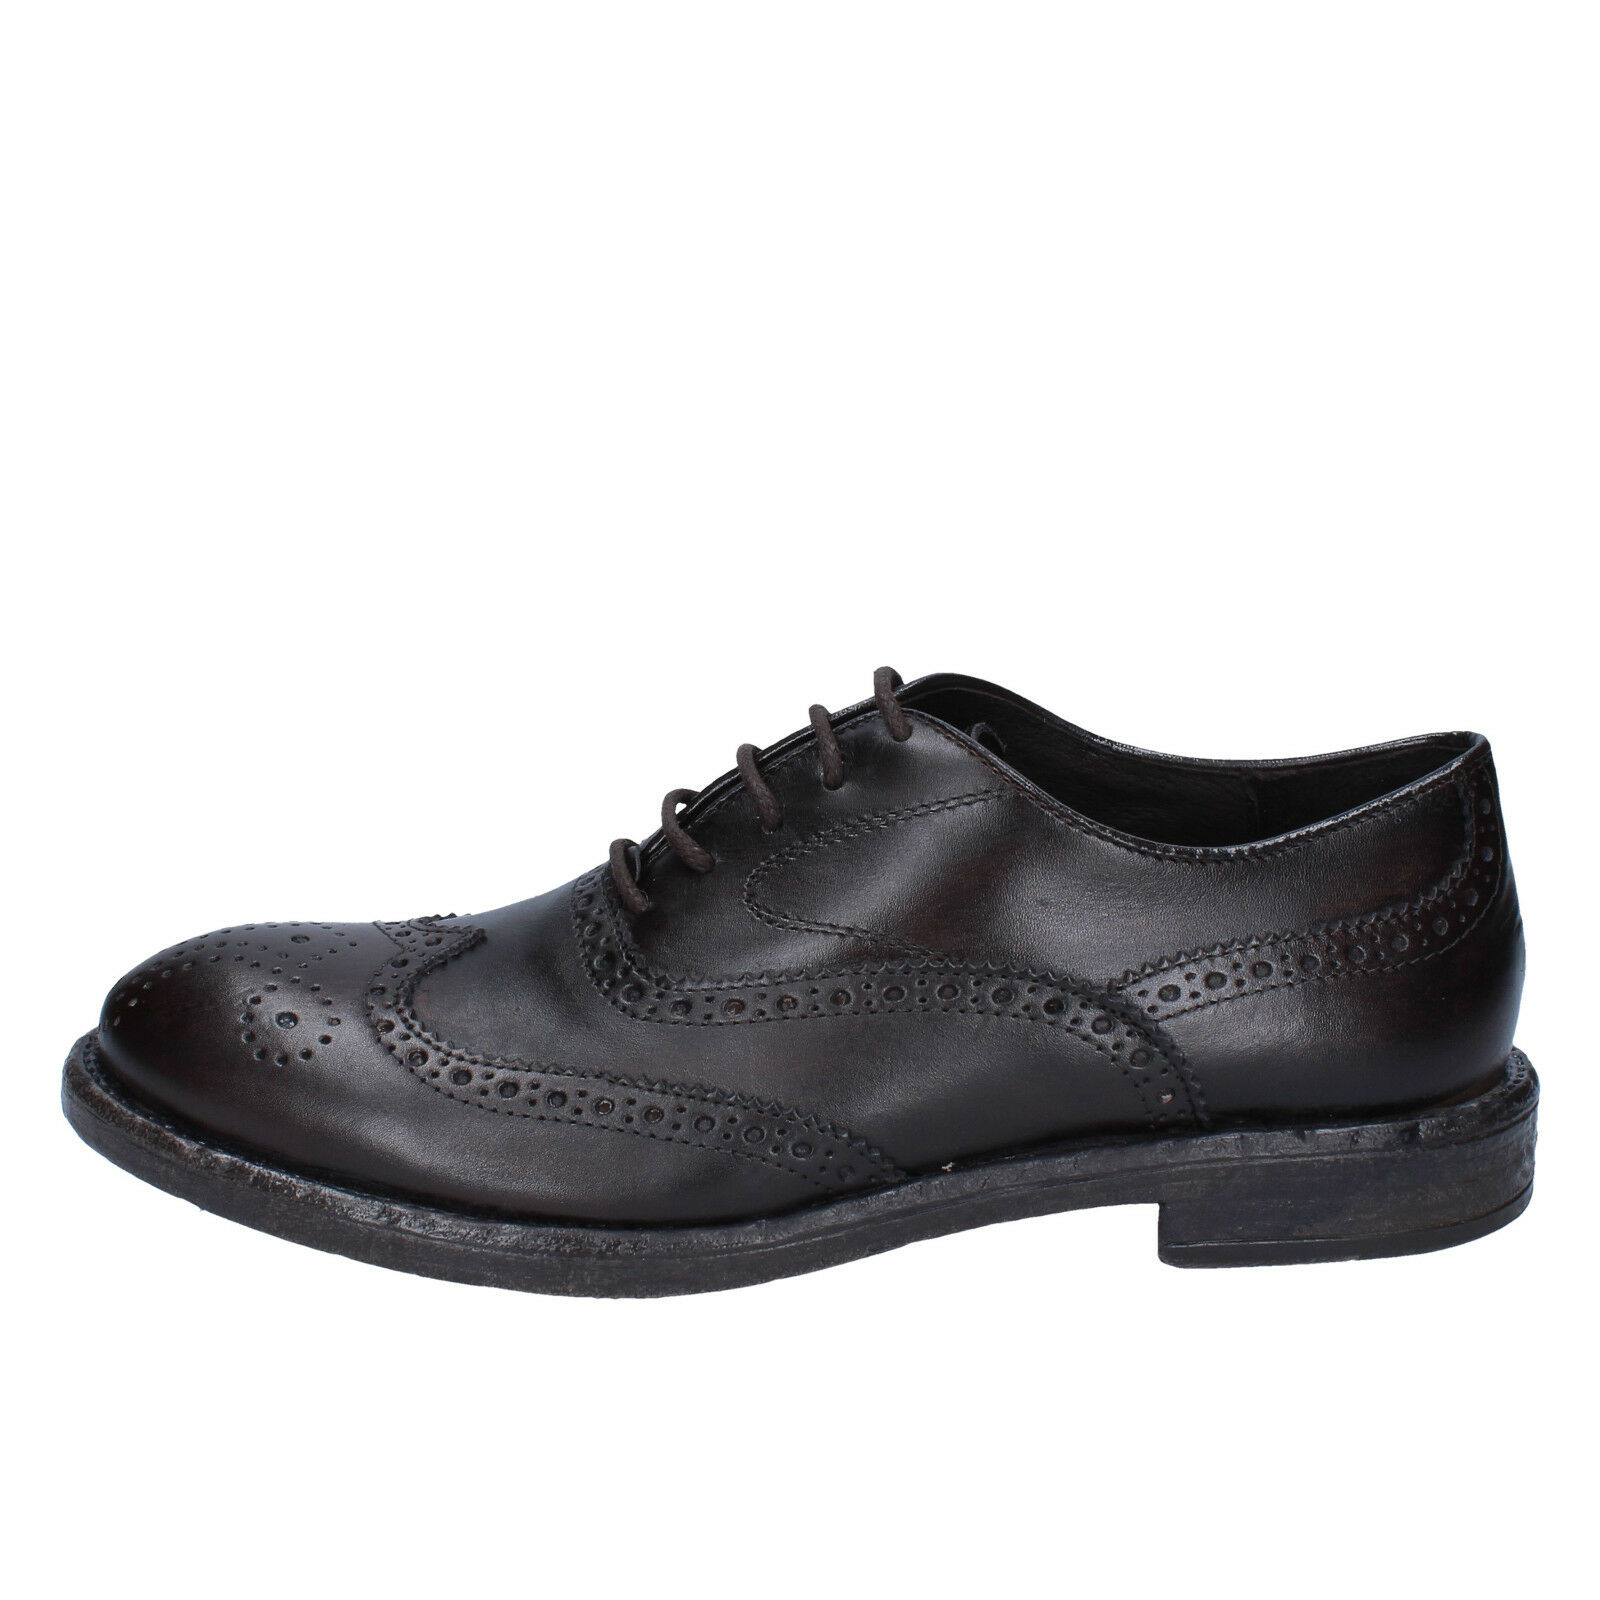 Men's shoes +2 MADE IN ITALY 7 () elegant dark brown leather BX422-40